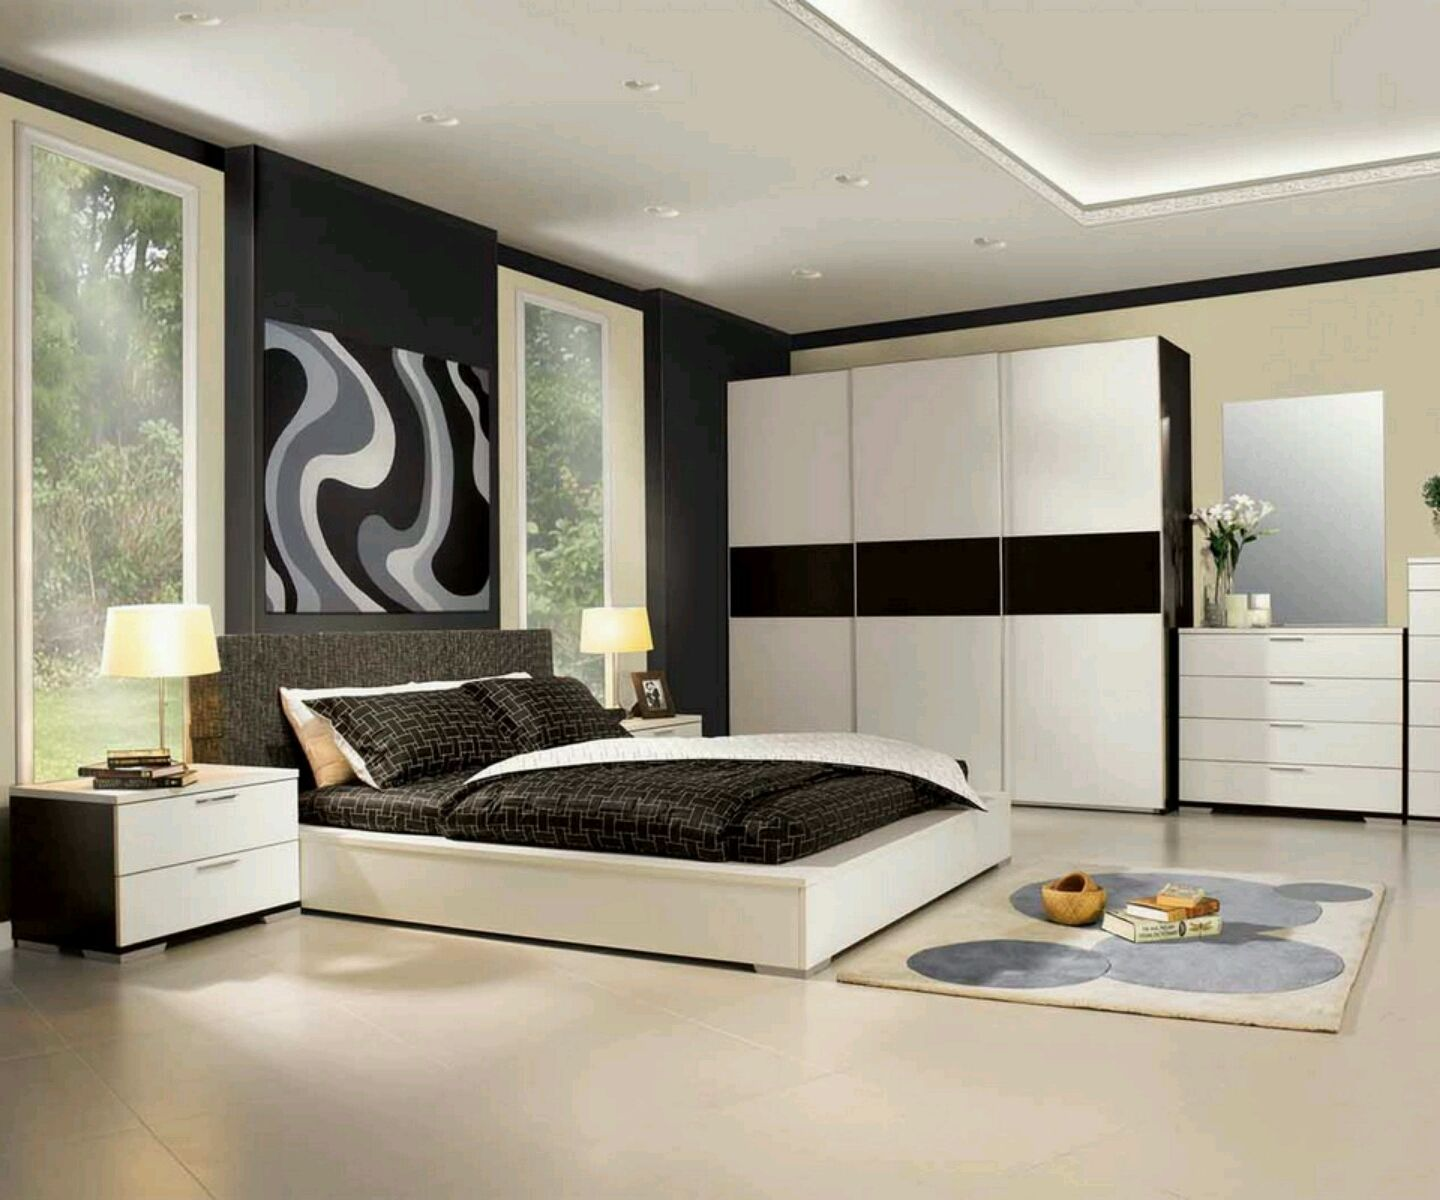 Modern Furniture Design | Modern luxury bedroom, Luxury ...